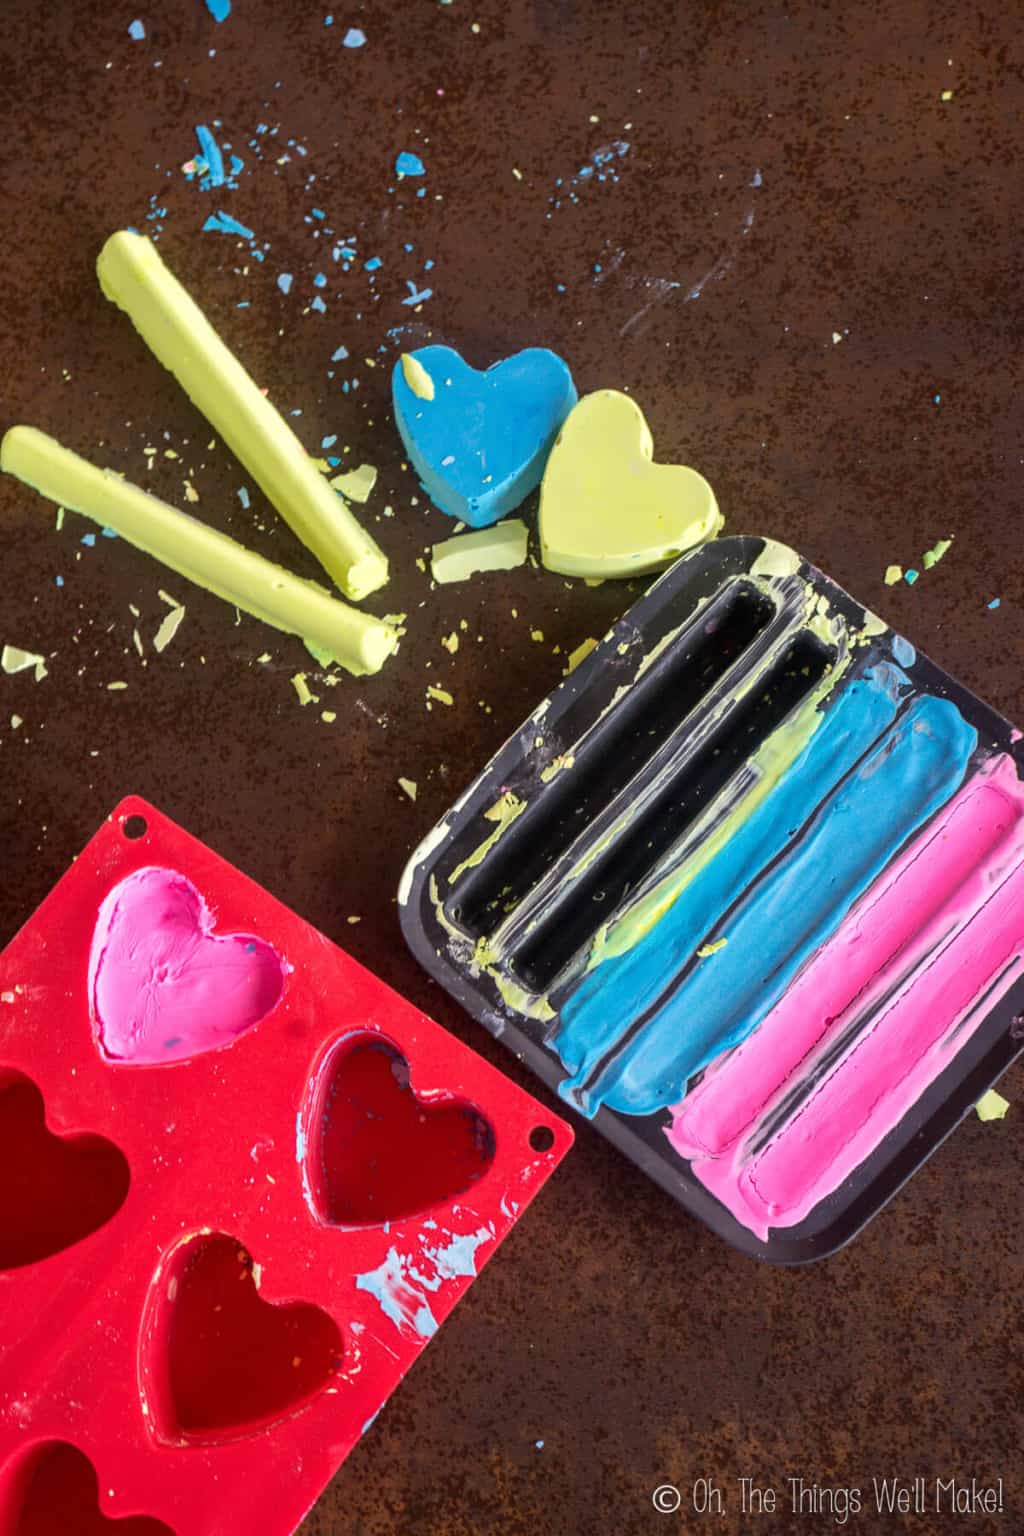 Close up of colorful chalk that has been taken out of the molds. Several pieces still remain in the molds